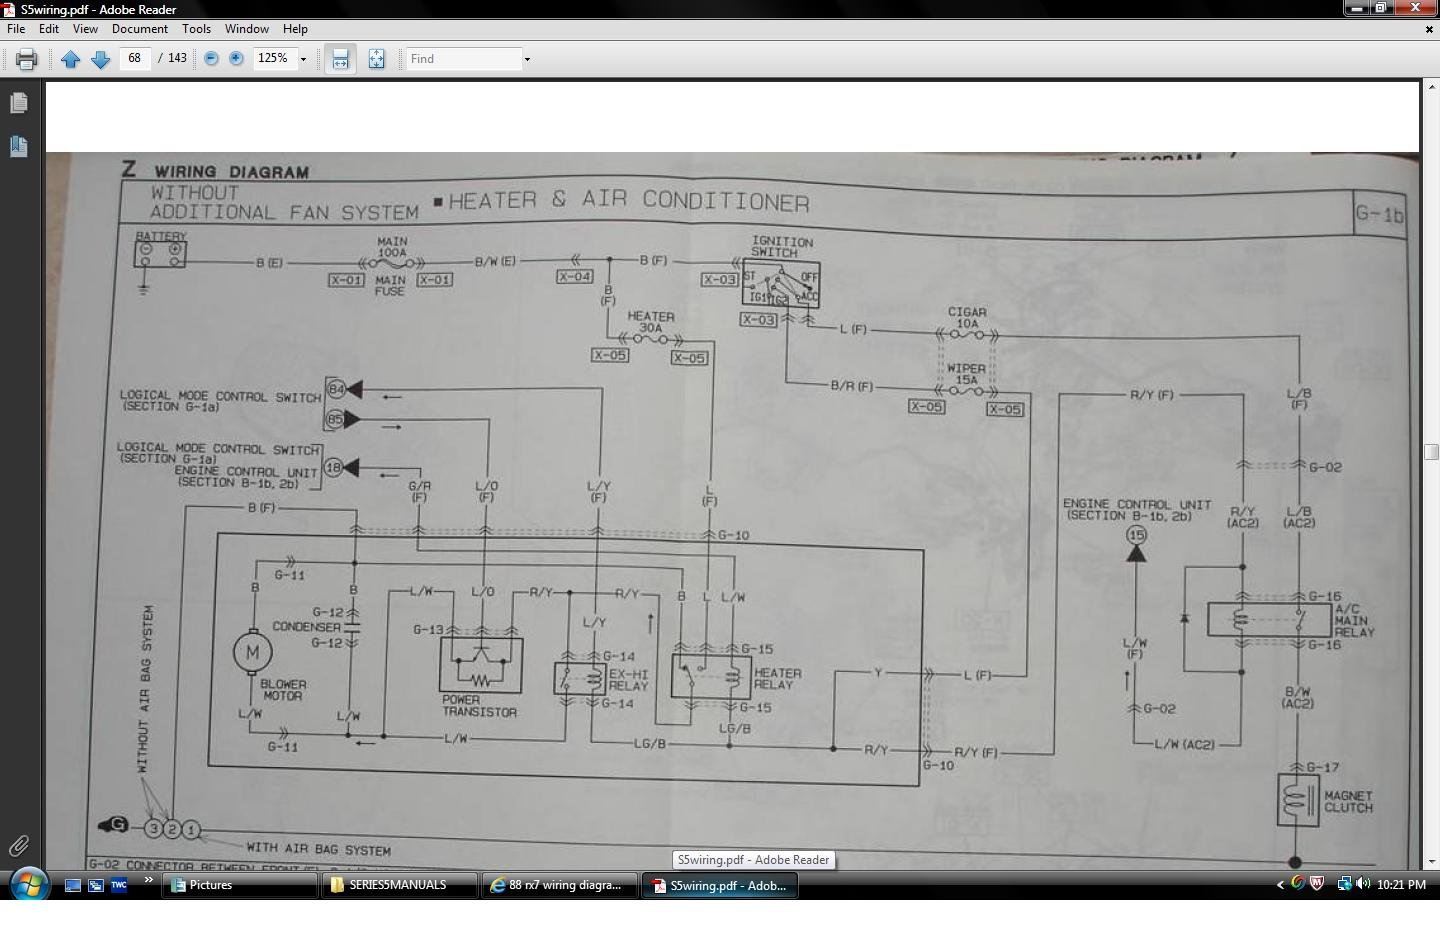 1986 mazda b2000 ignition wiring diagram 2004 pontiac vibe radio rx7 ecu free engine image